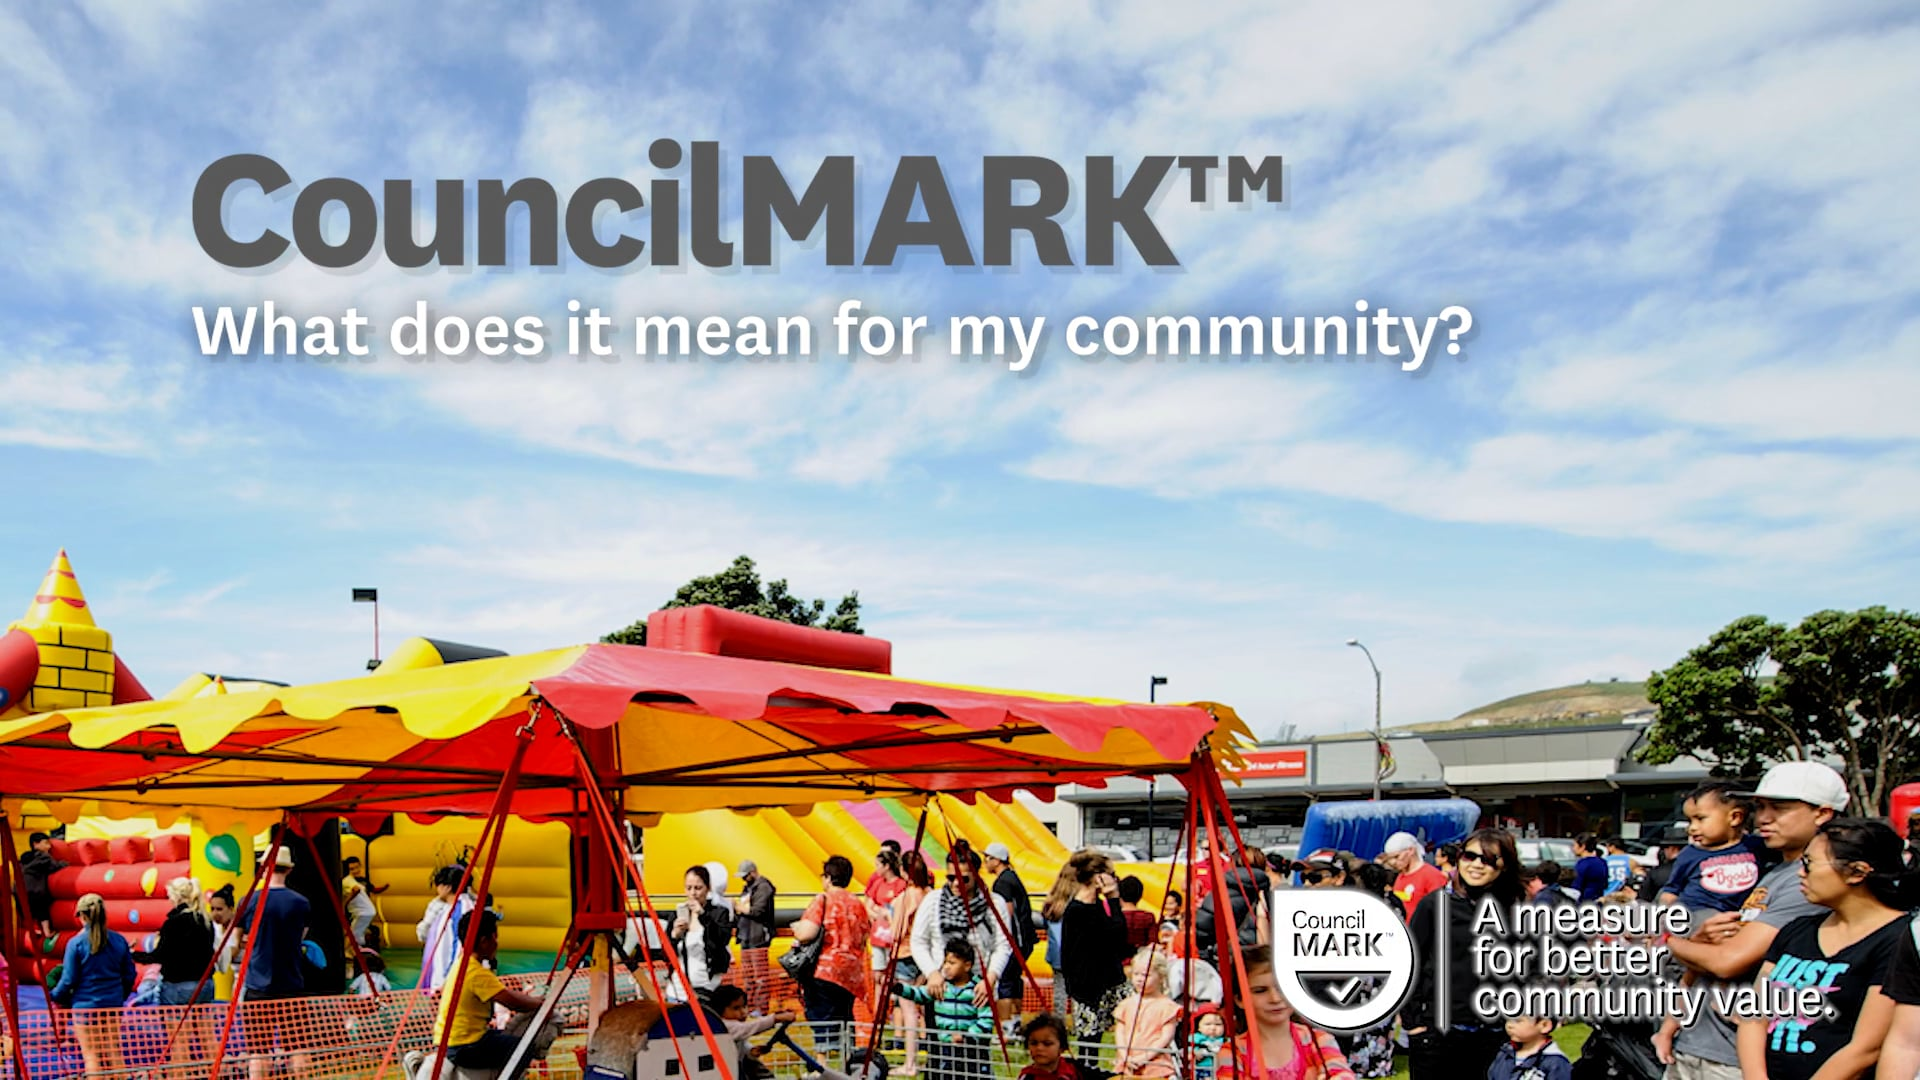 CouncilMARK - What does it mean for my community?